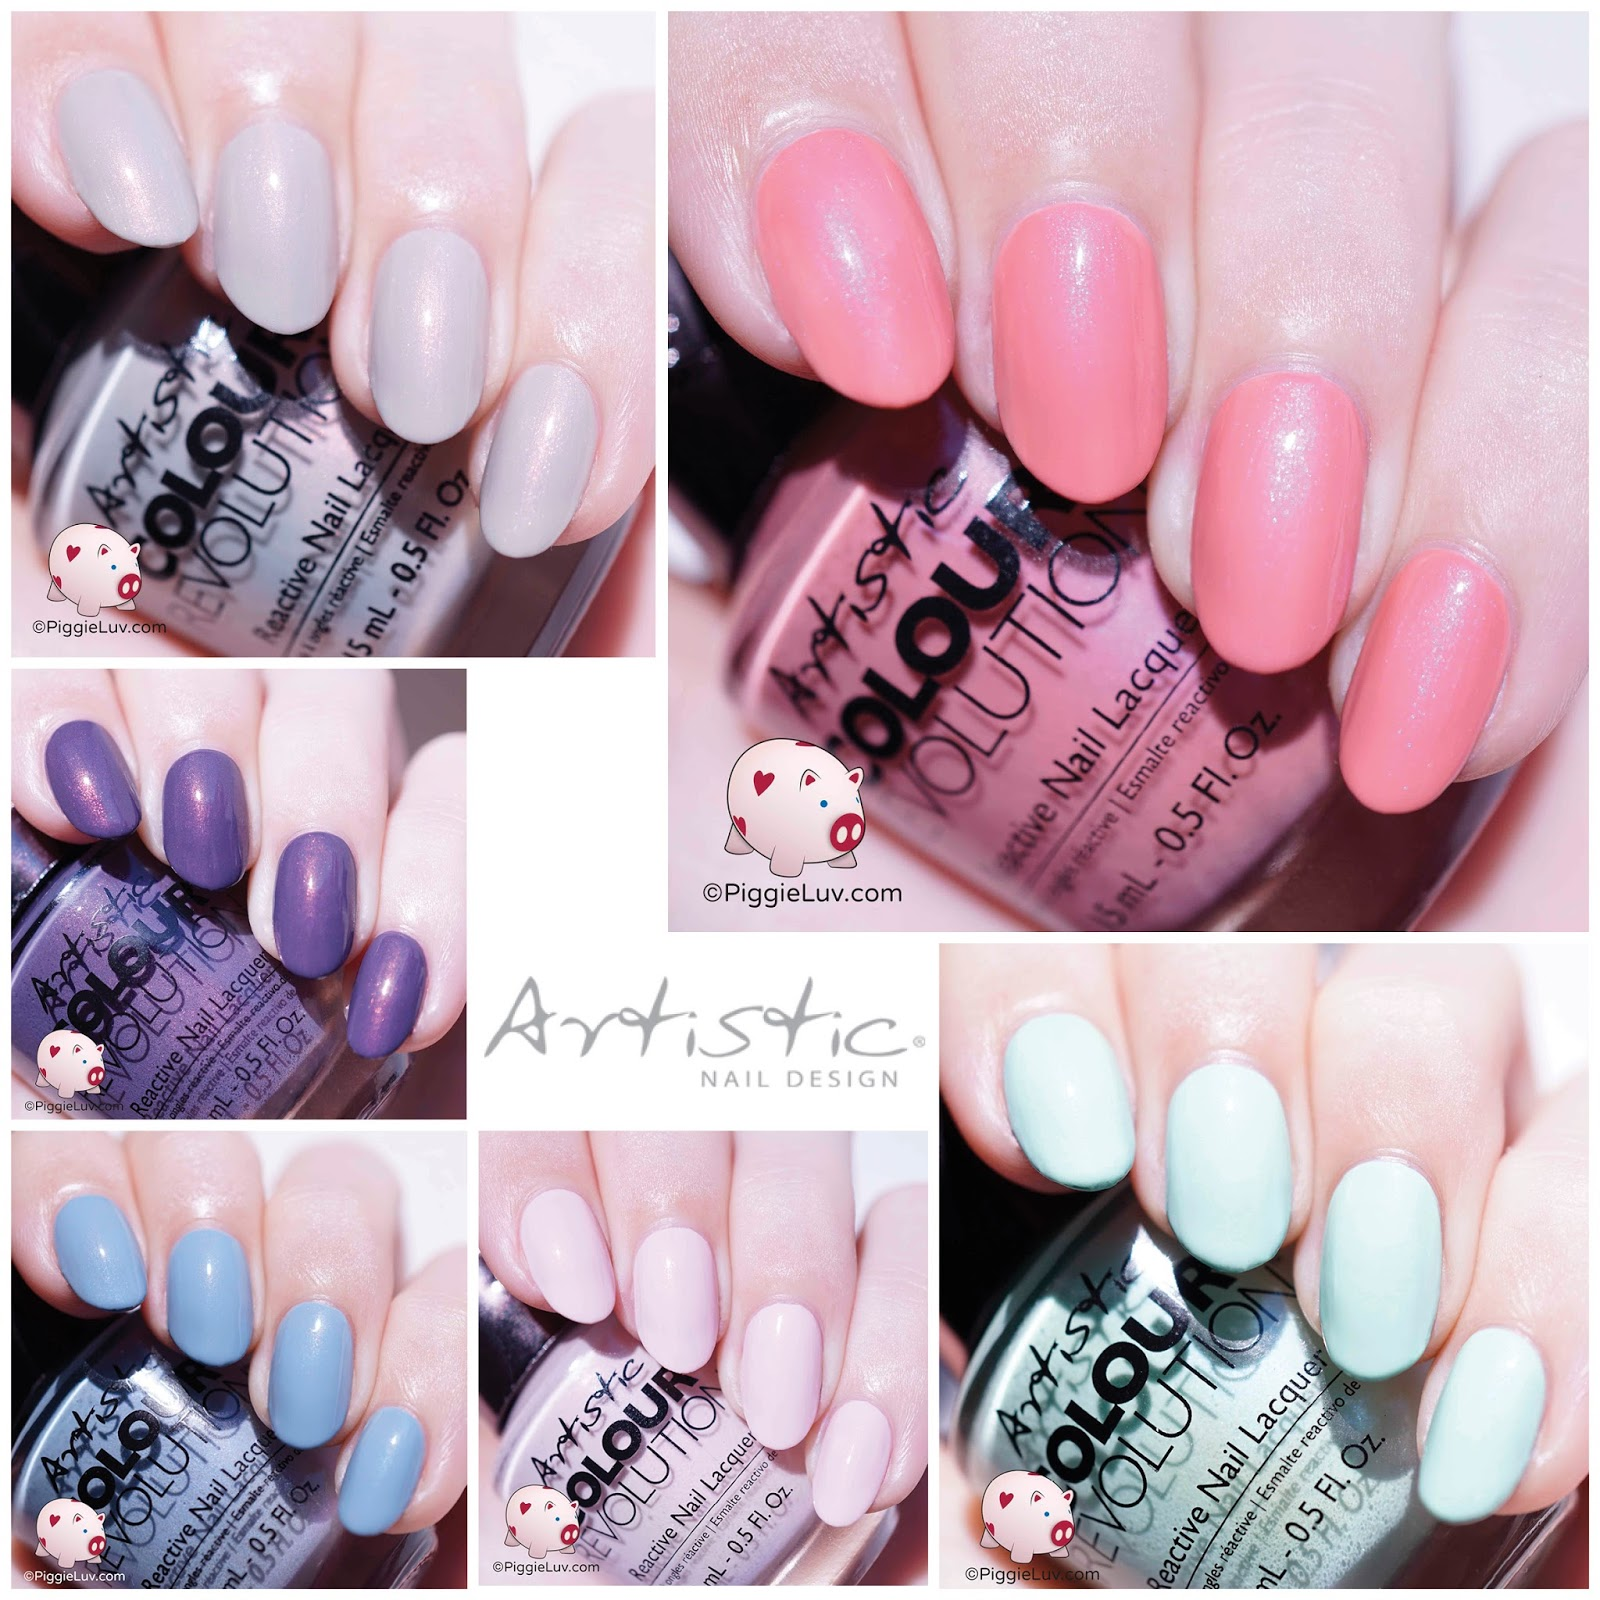 Piggieluv Artistic Nail Design Urban Distressed Collection Swatches